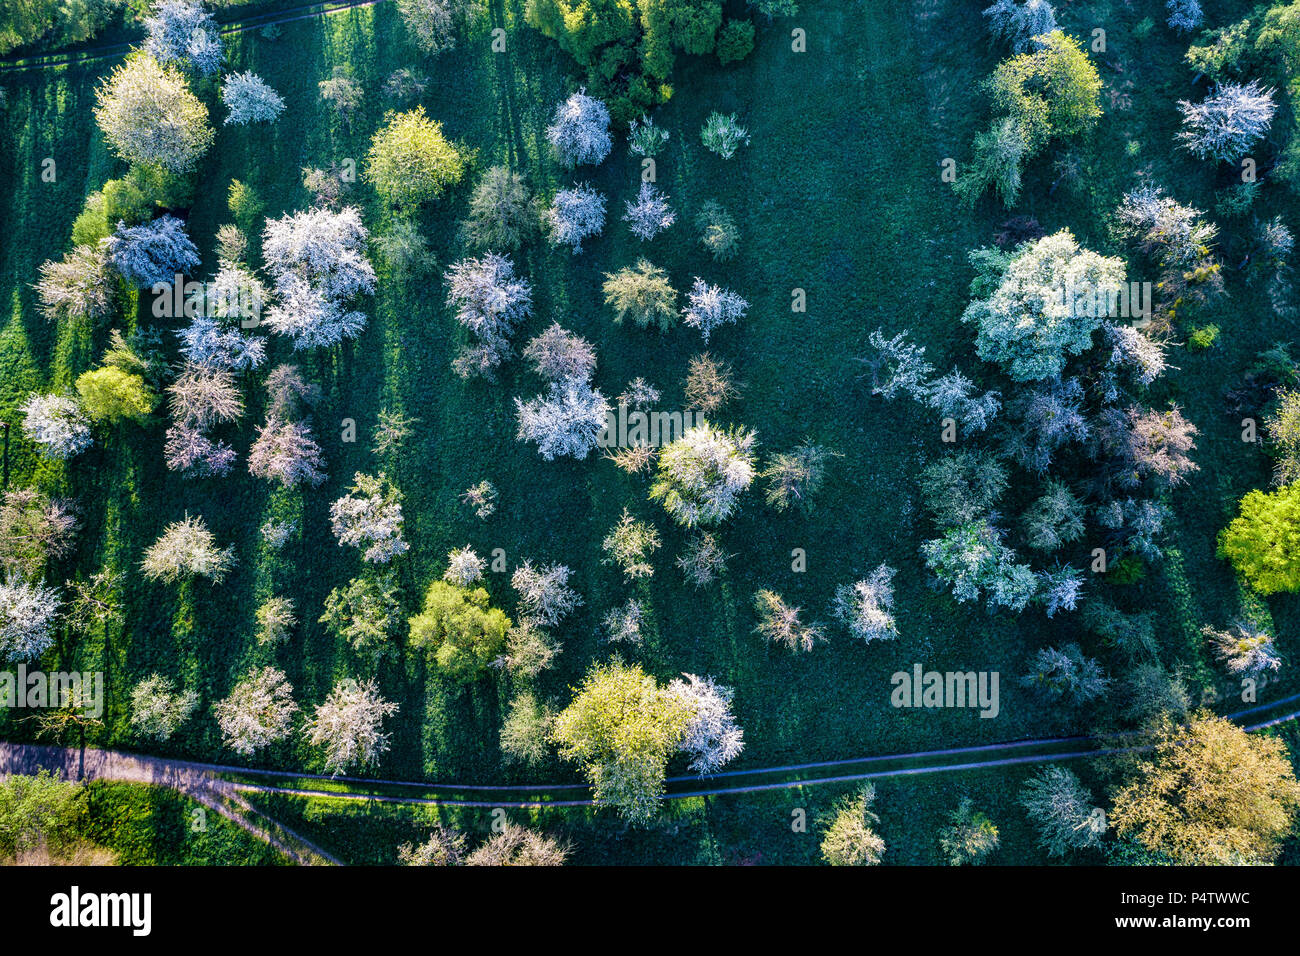 Germany, Baden-Wuerttemberg, Rems Valley, Aerial view of meadow with scattered fruit trees in spring - Stock Image